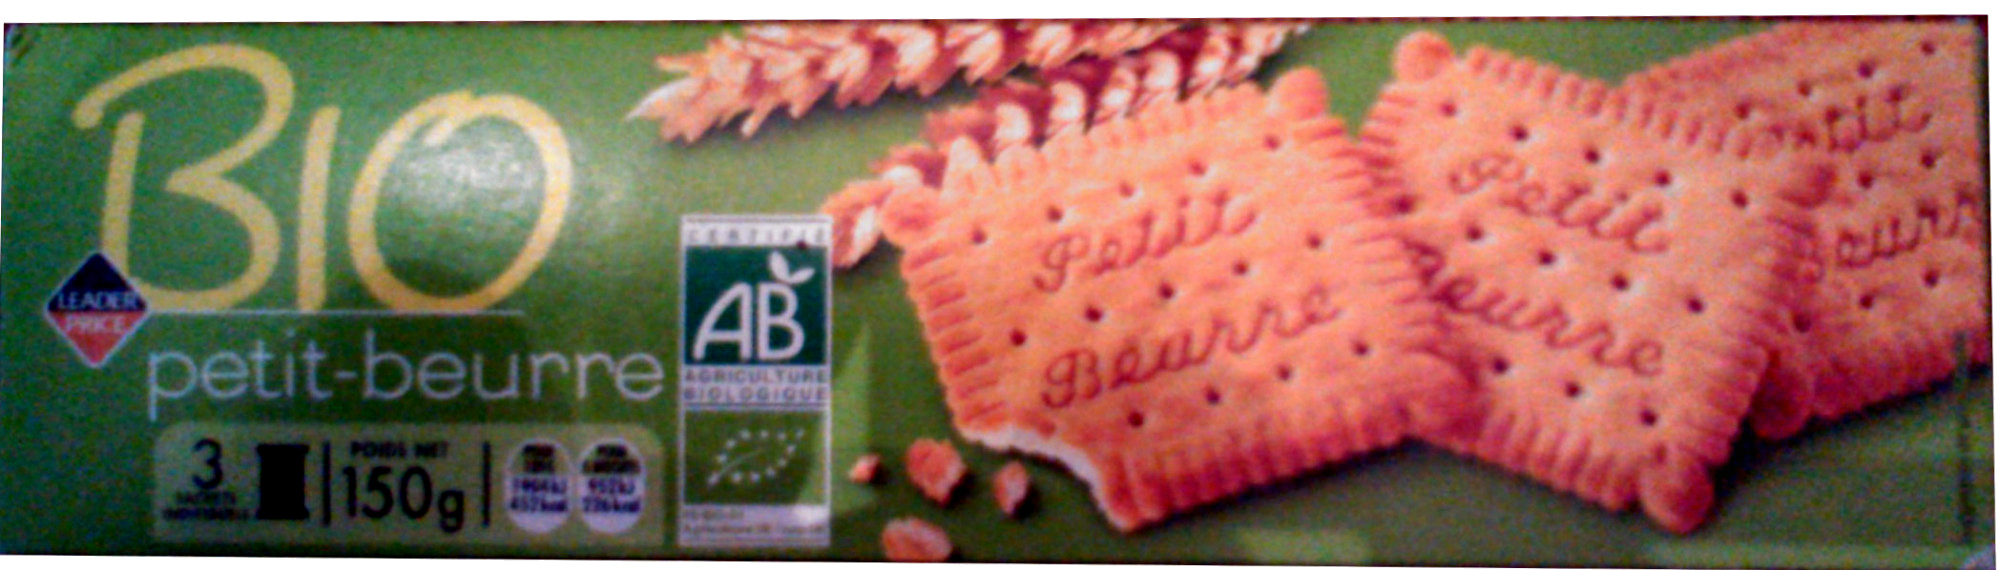 Biscuits petit-beurre - Product - fr